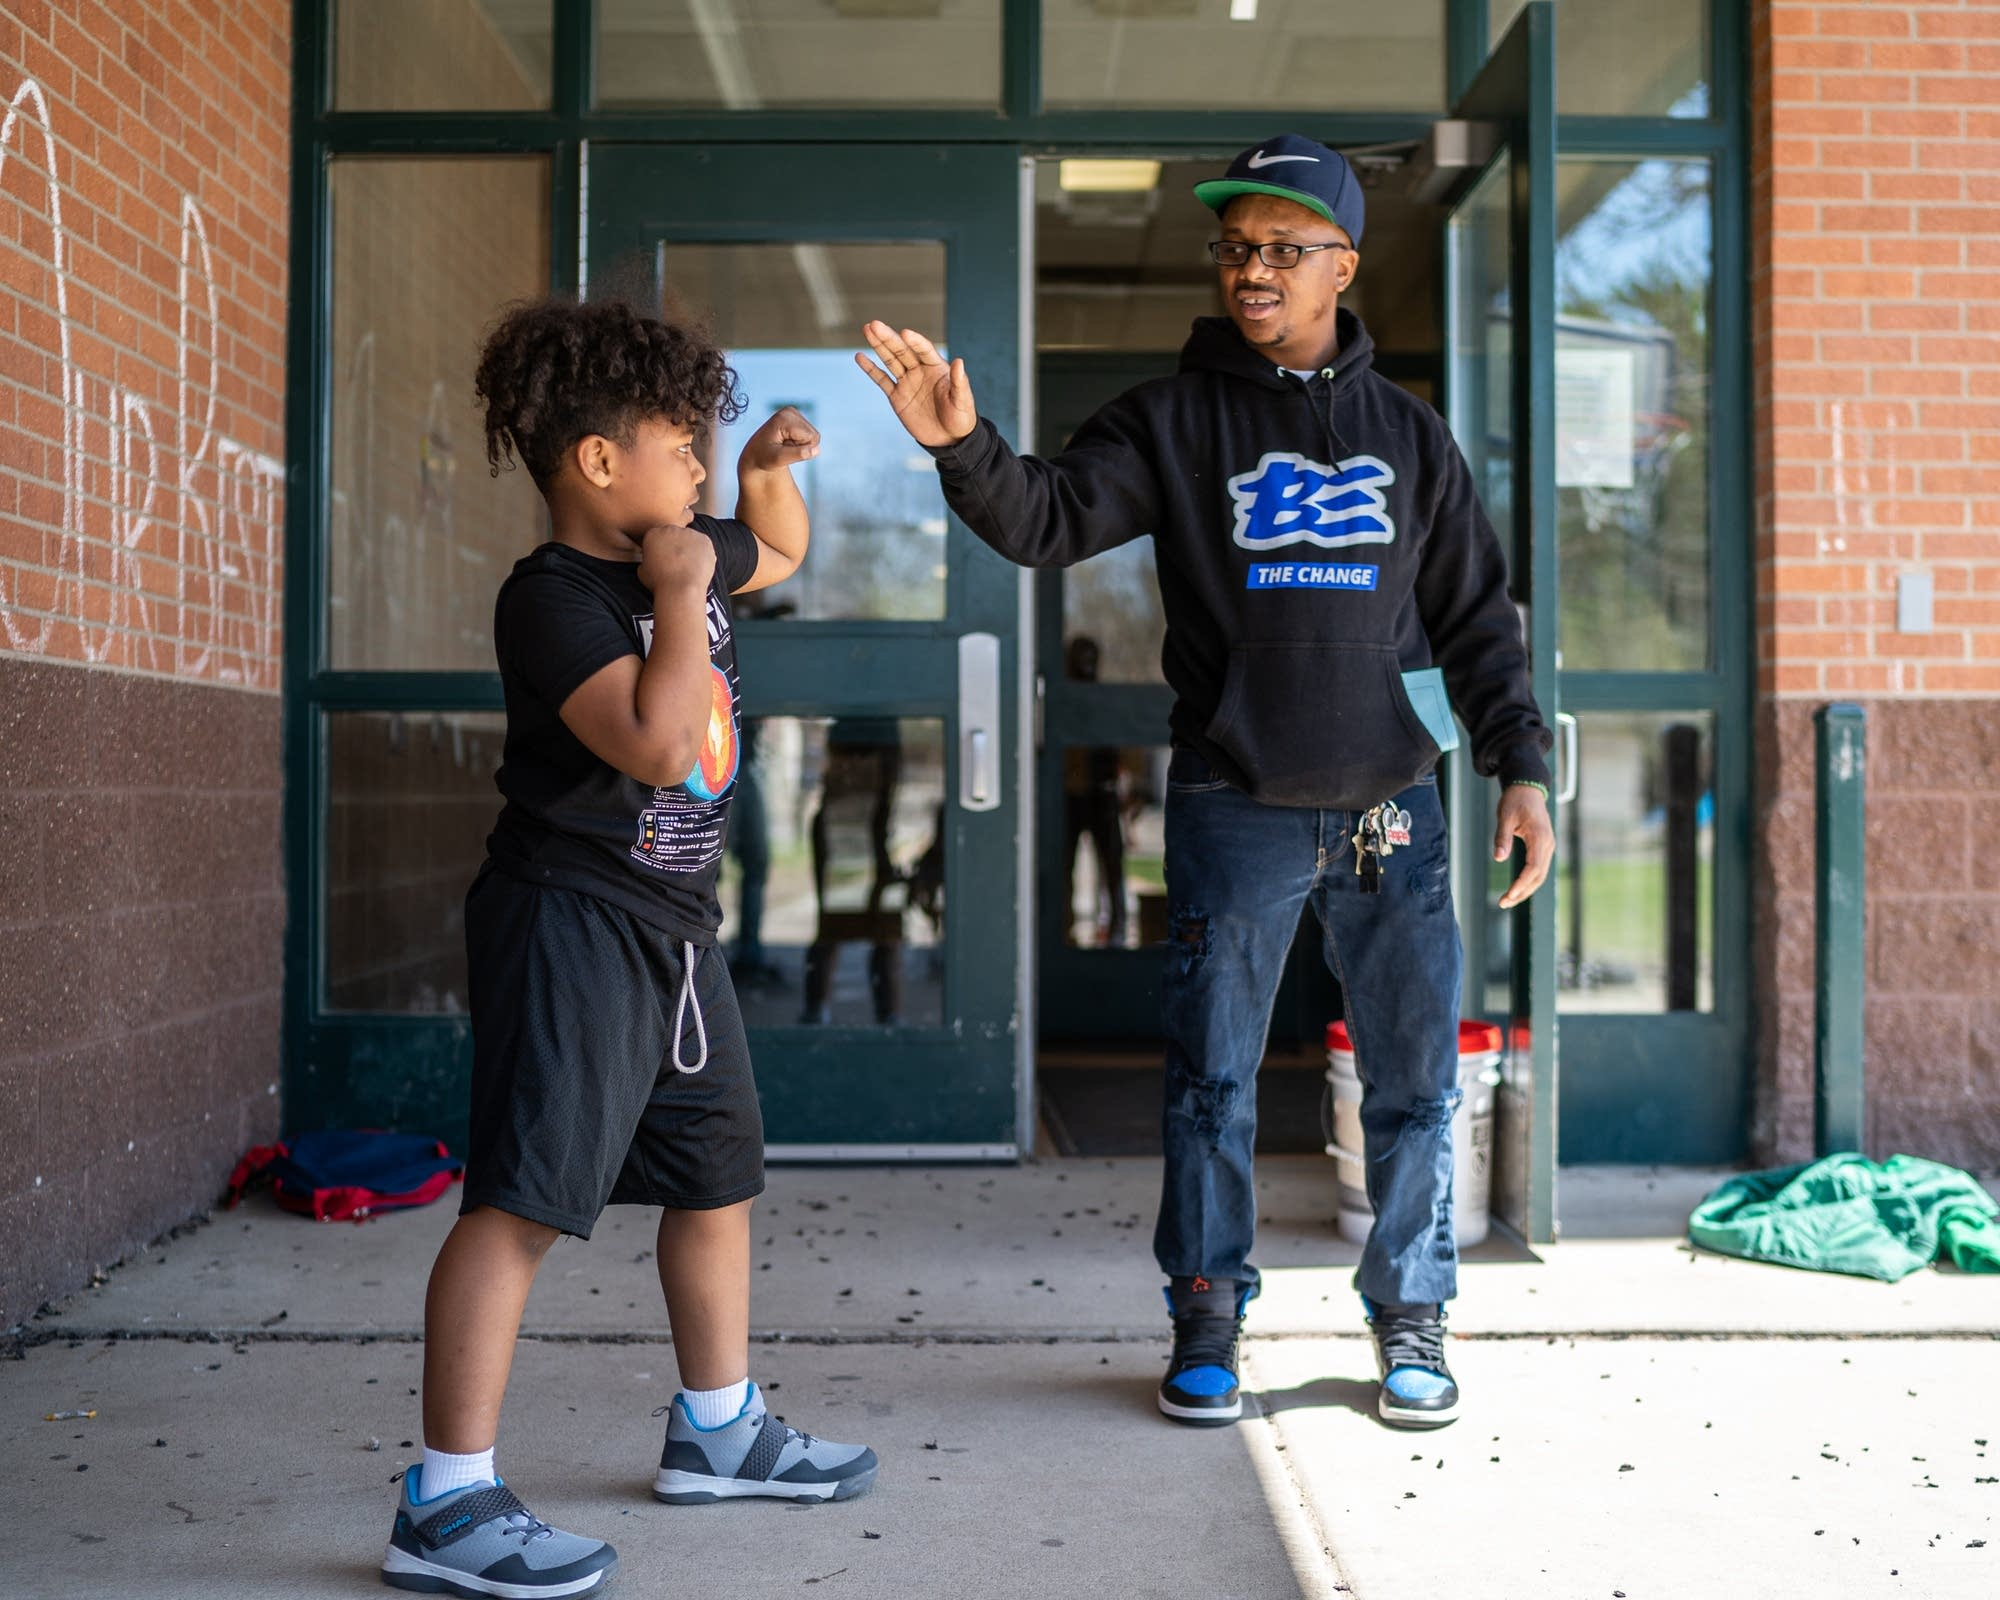 Morgan McDonald Sr. does boxing drills with 8-year-old Mekhi.